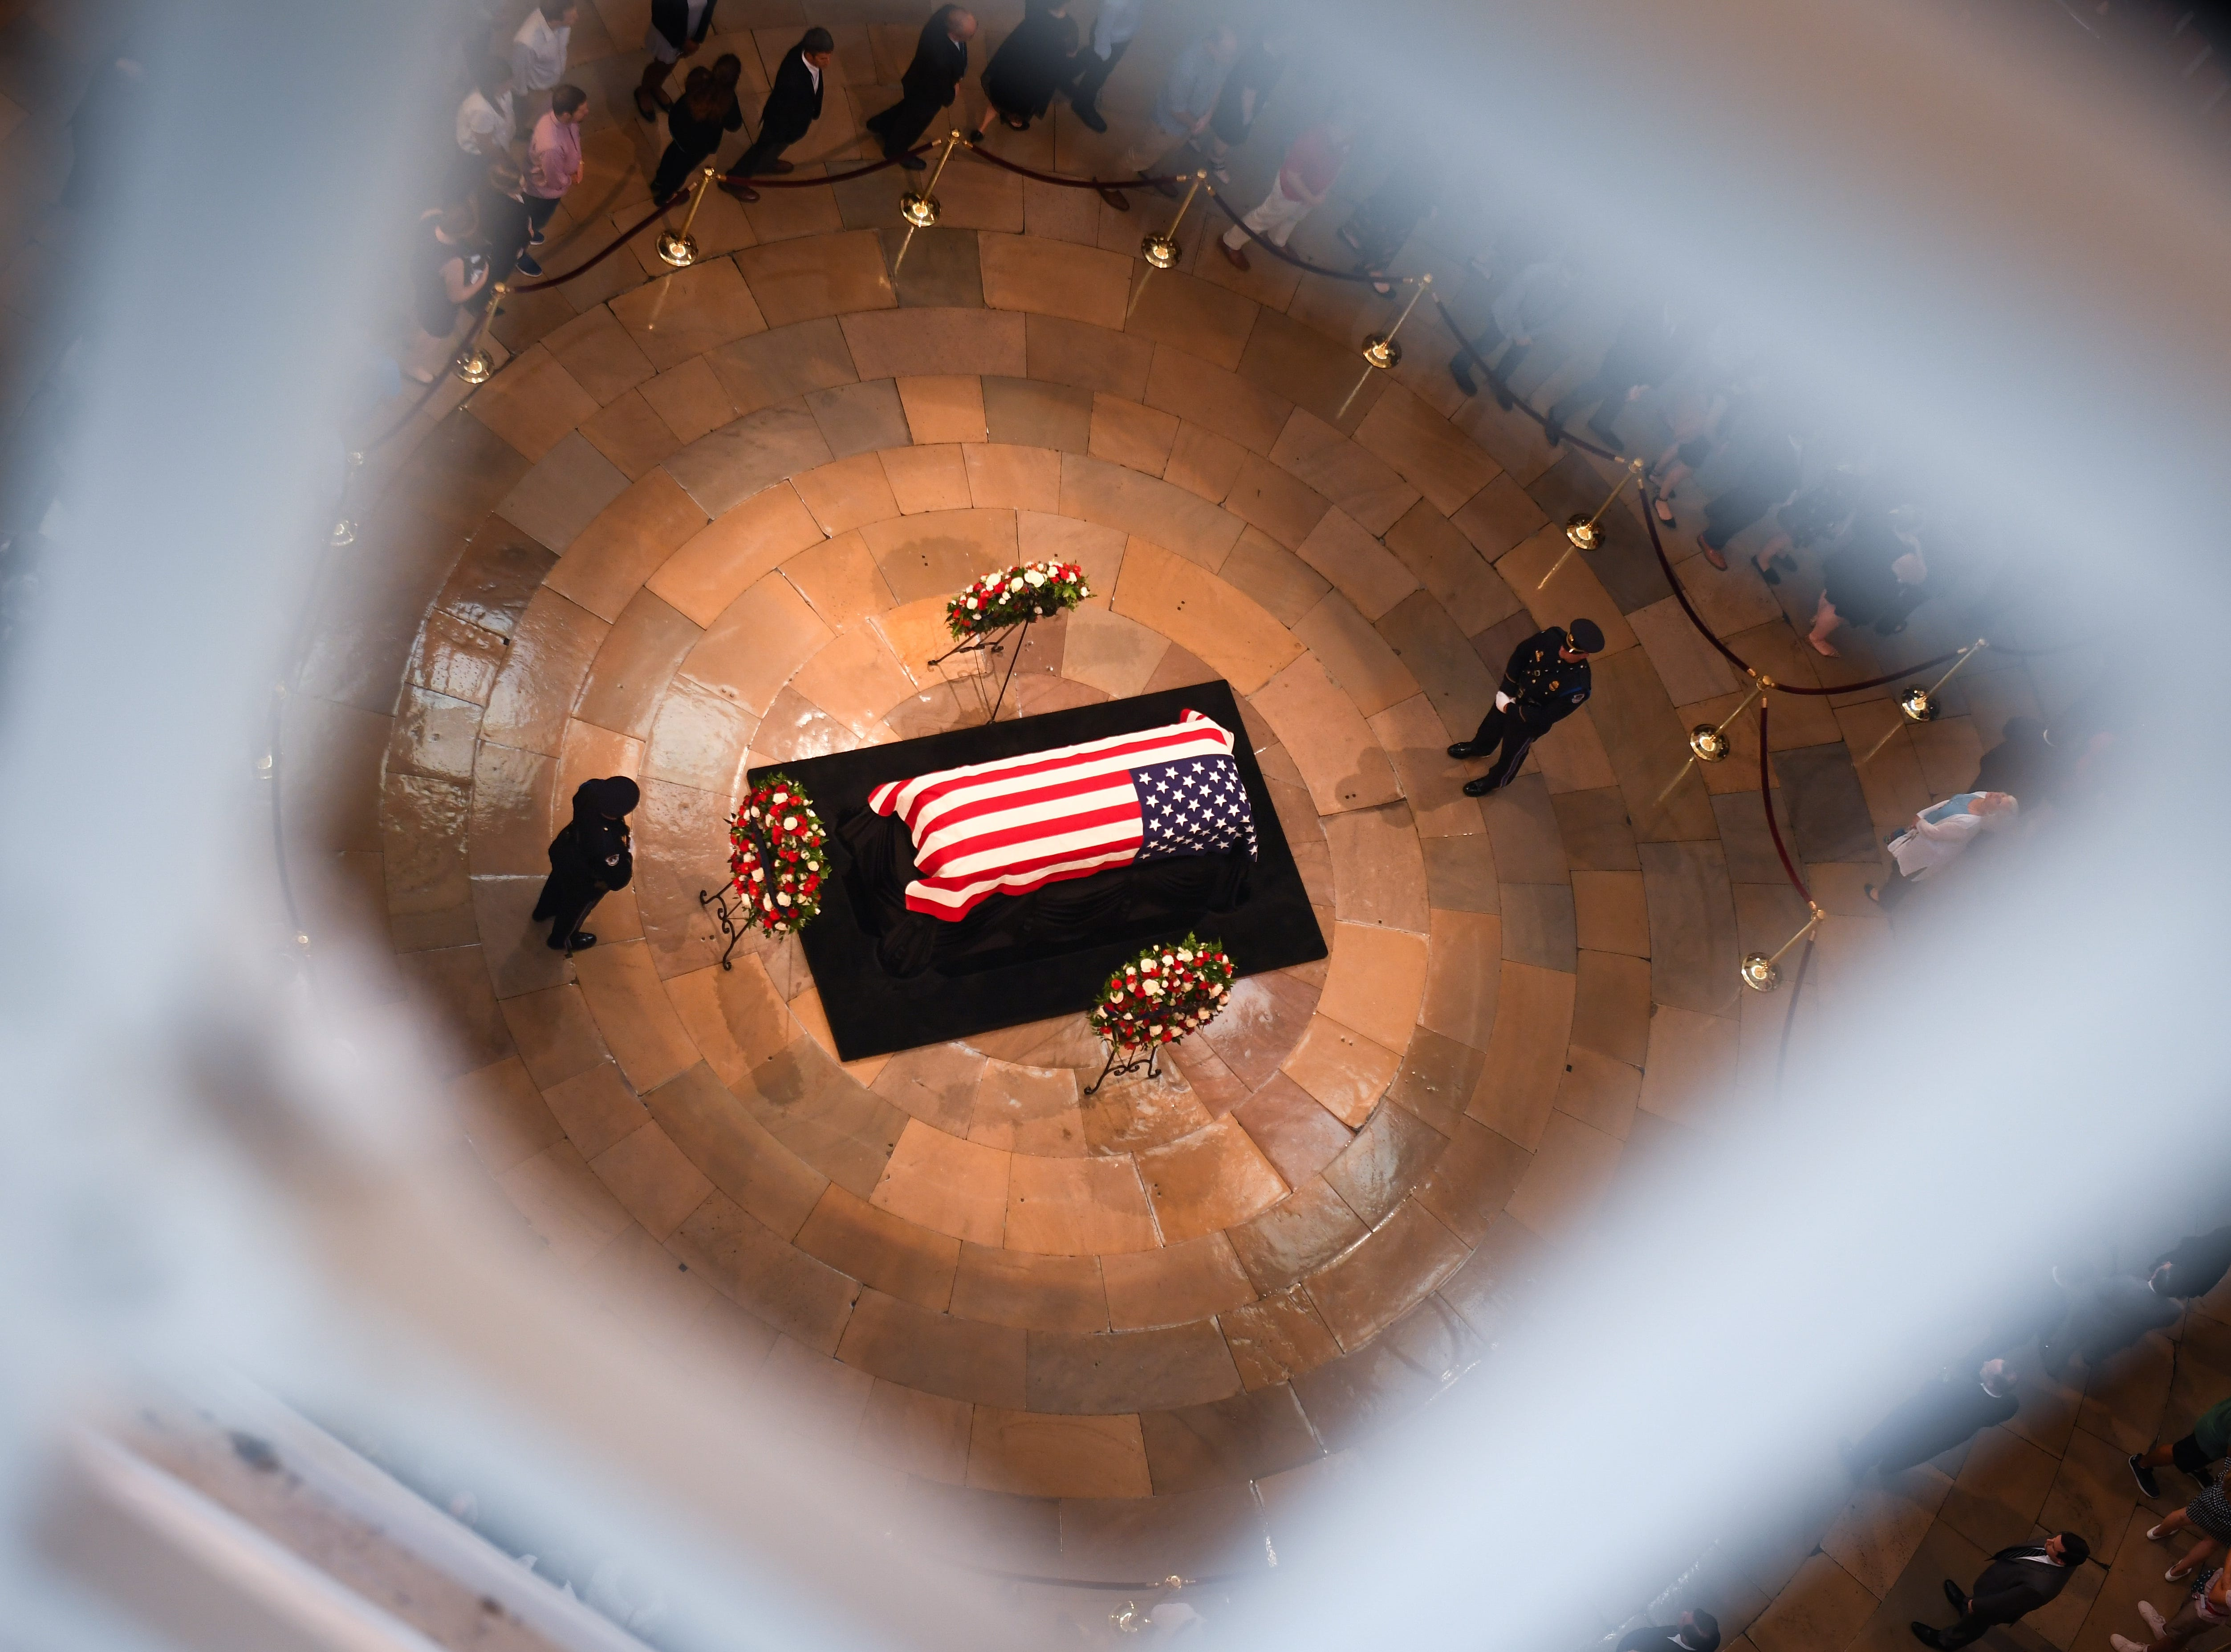 8/31/18 2:03:53 PM -- Washington, DC, U.S.A  -- The body of John McCain lying in state at the U.S. Capitol in Washington on Aug. 31, 2018 in Washington. Sen. McCain died on Aug. 25. --    Photo by Jack Gruber, USA TODAY Staff